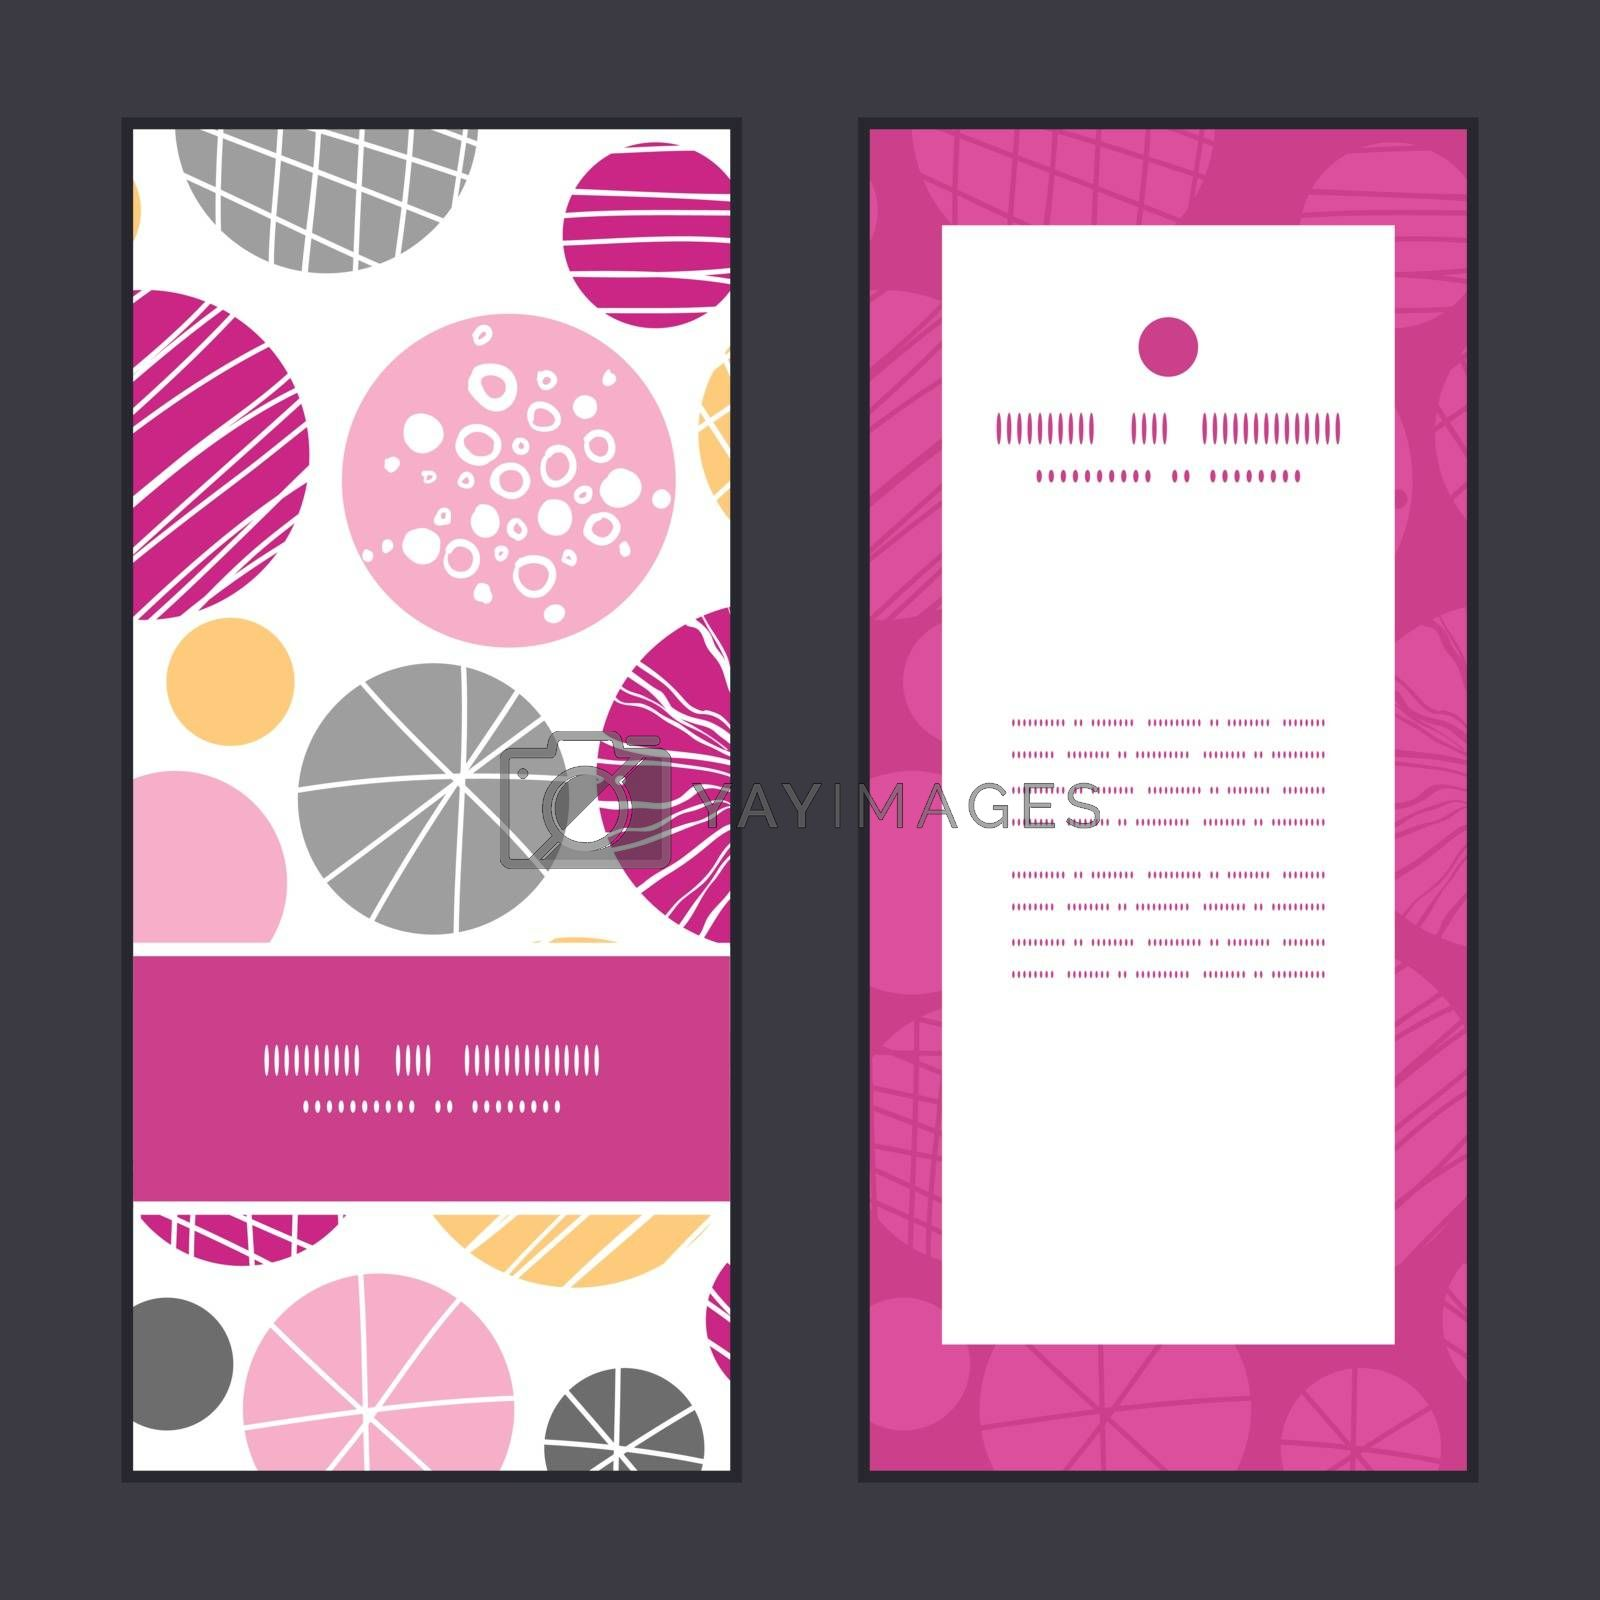 Vector abstract textured bubbles vertical frame pattern invitation greeting cards set graphic design